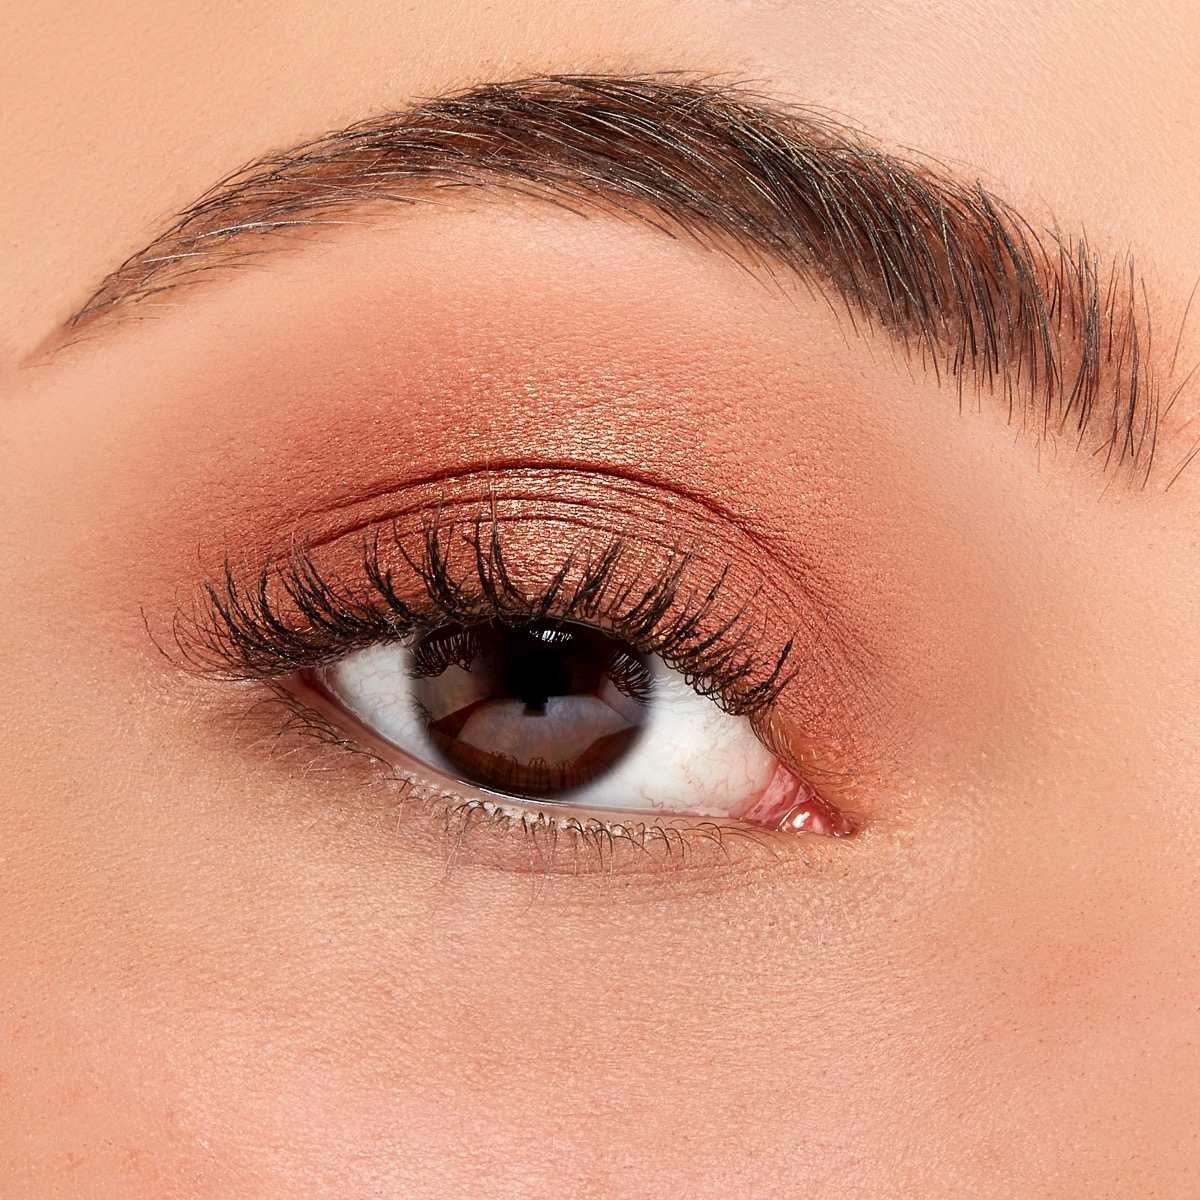 A closeup of a woman's eye with Sigma's Iconic Eyeshadow applied